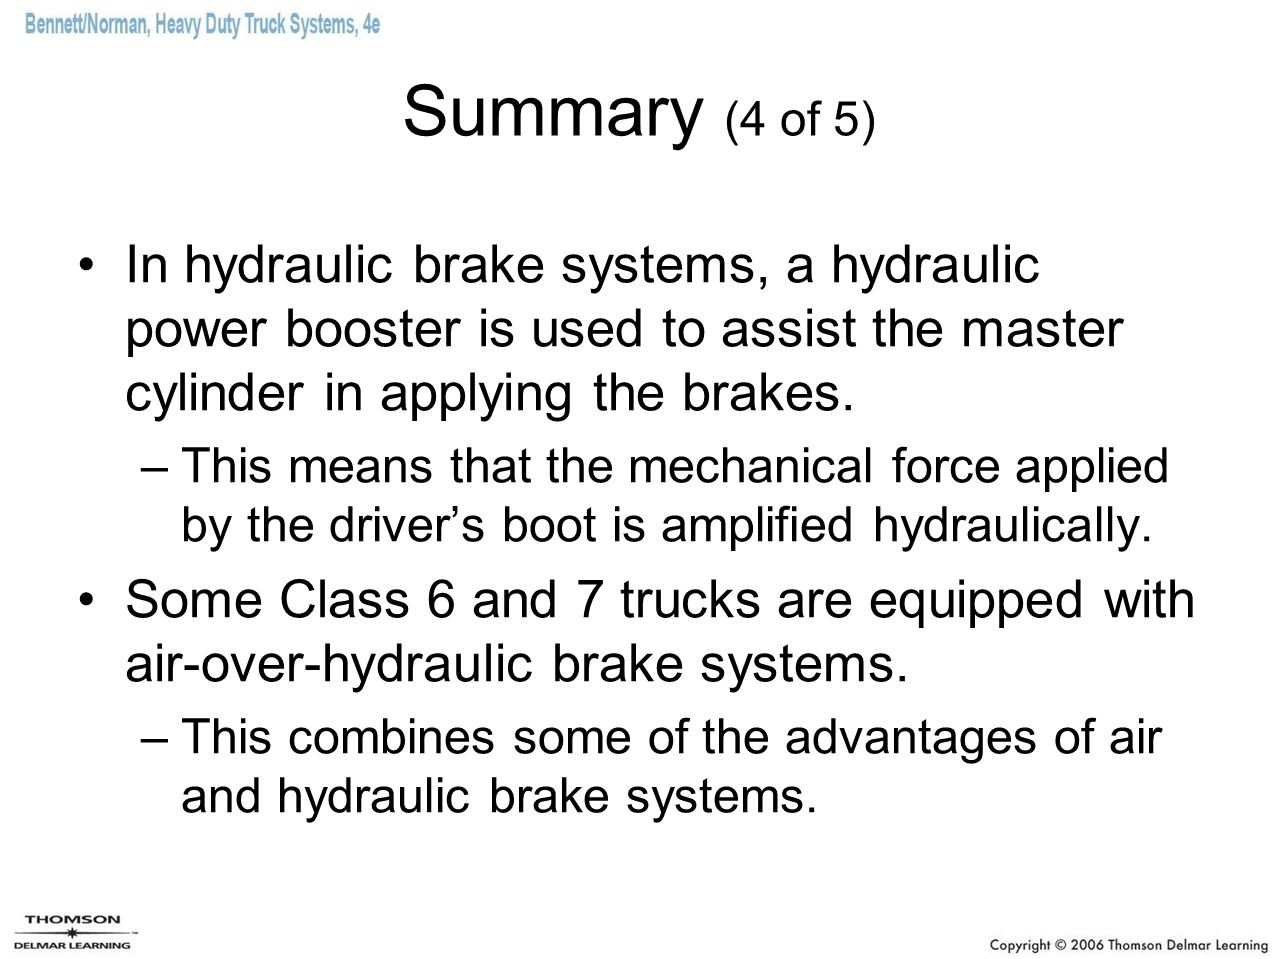 Summary (4 of 5) In hydraulic brake systems, a hydraulic power booster is used to assist the master cylinder in applying the brakes.